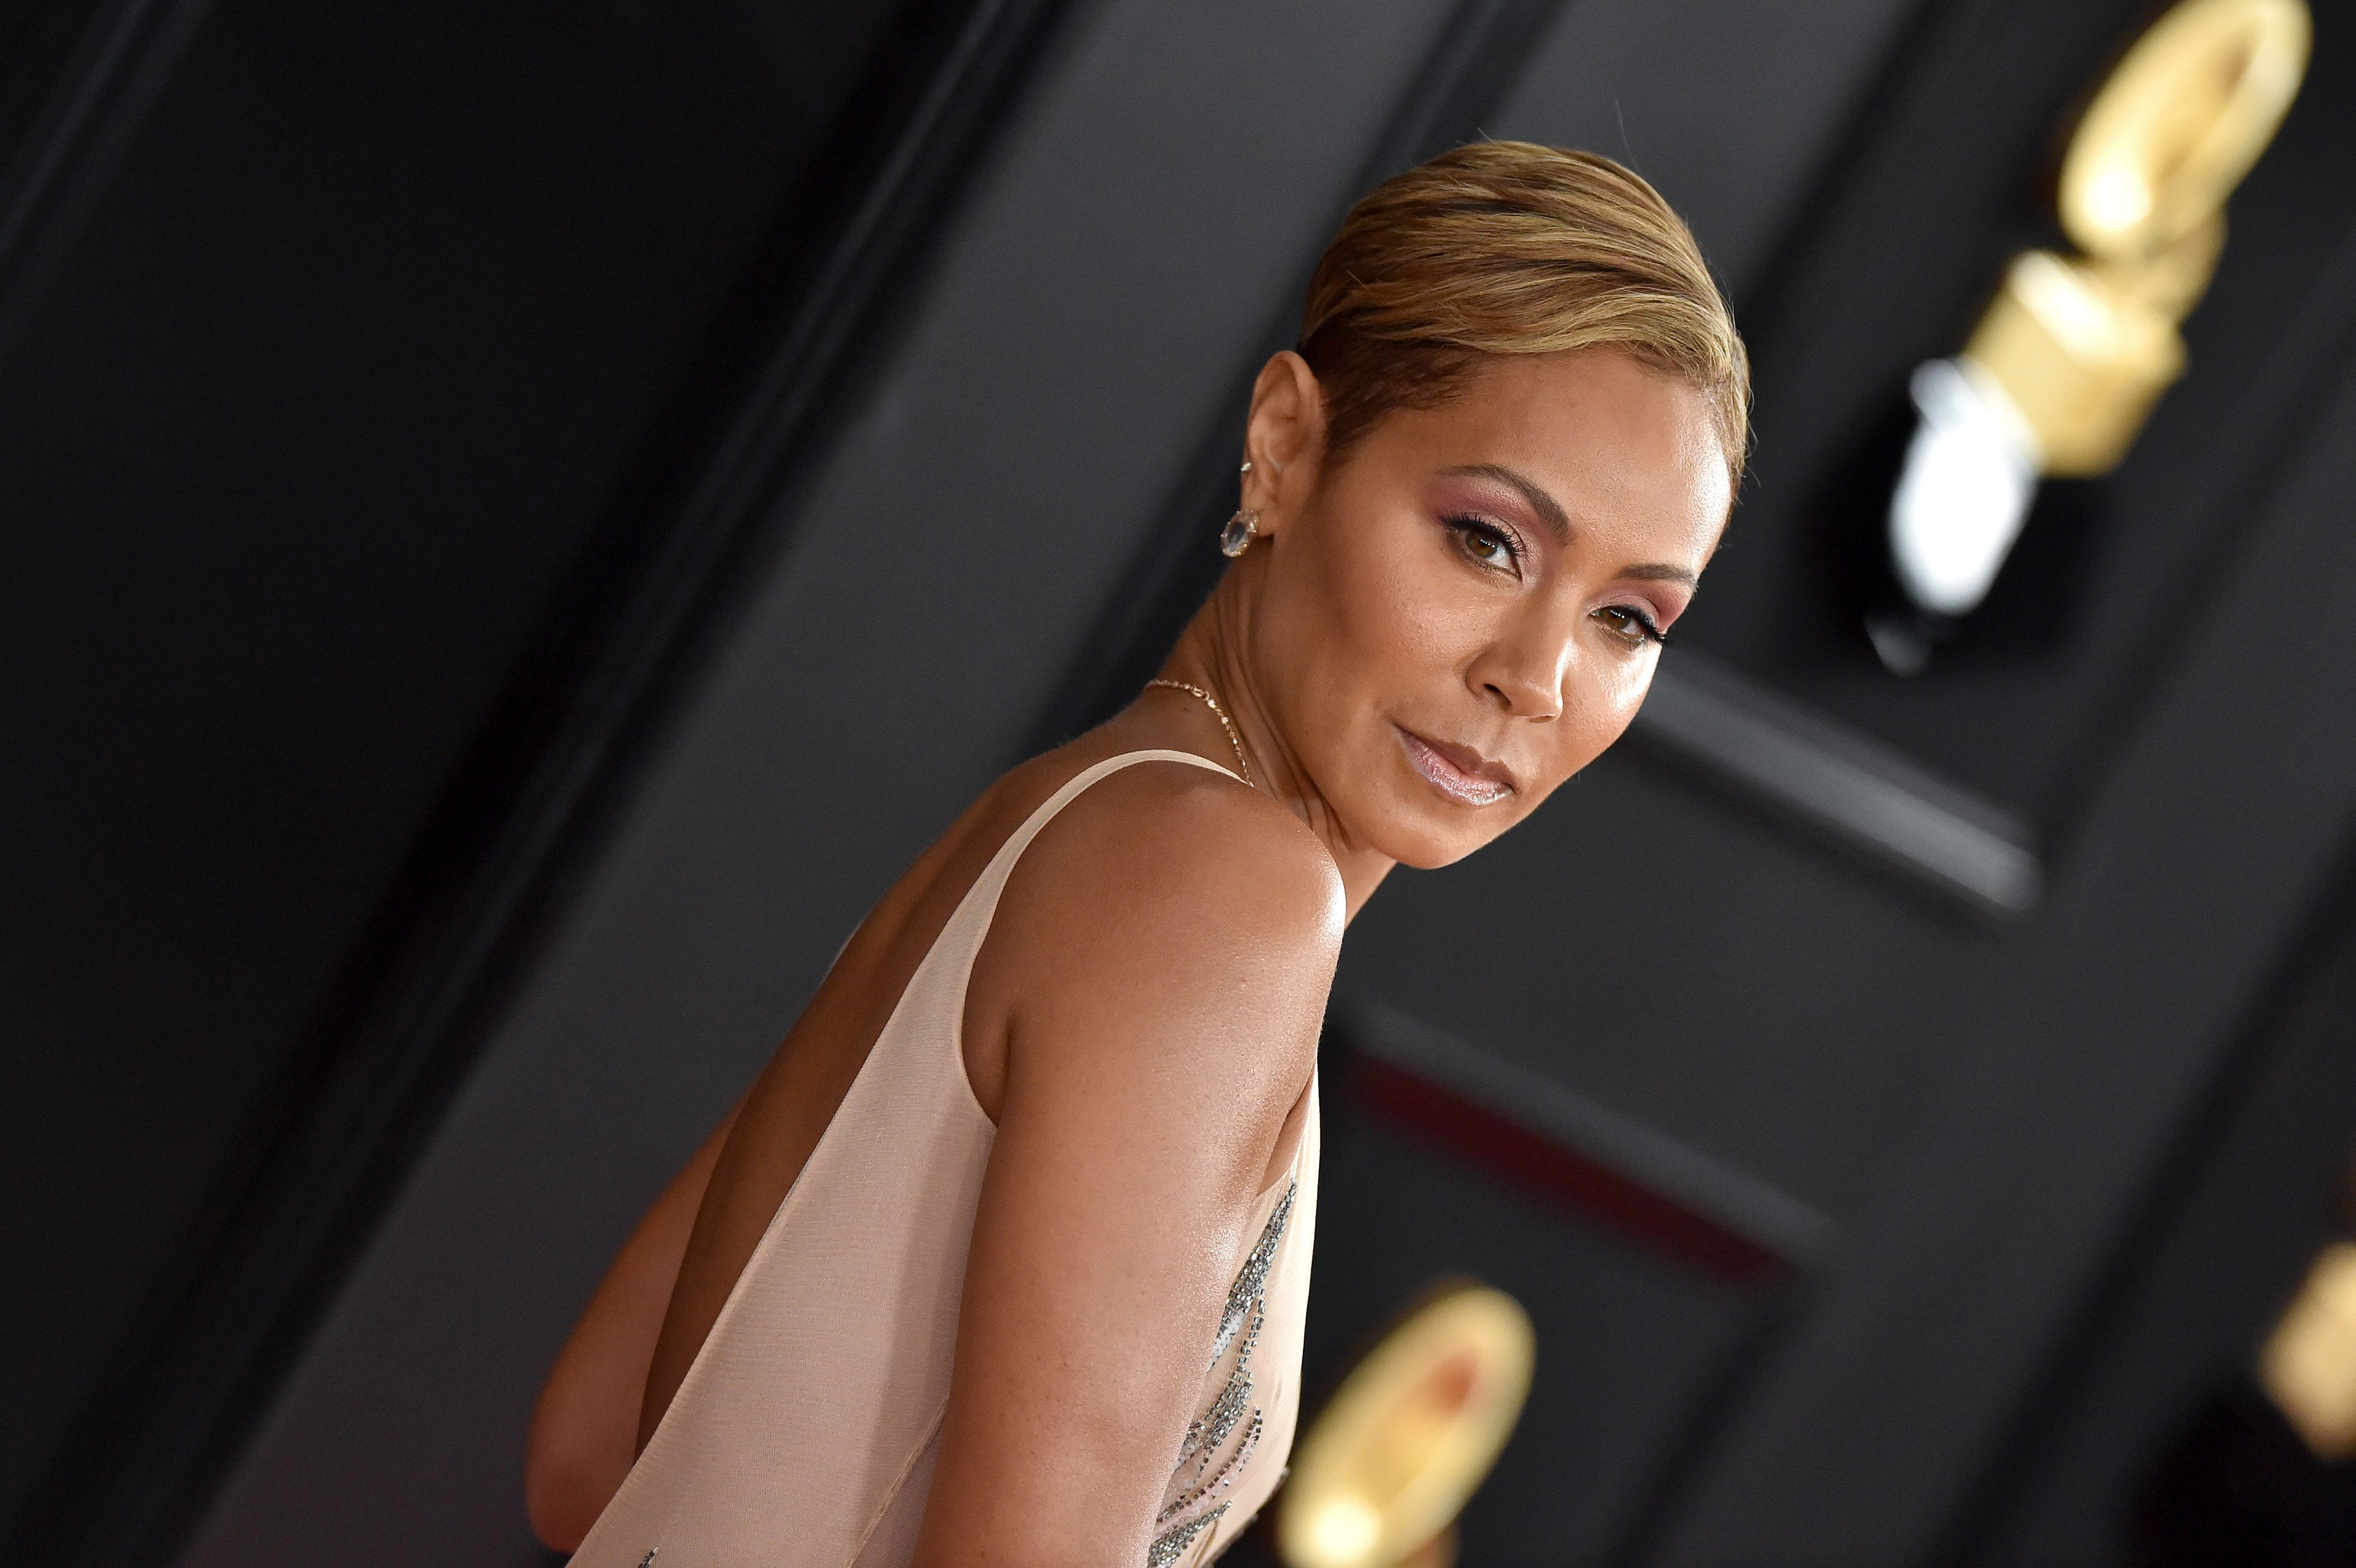 Jada Pinkett Smith: 'My Body Isn't As Firm As It Was and I'm Learning to Love It That Way'